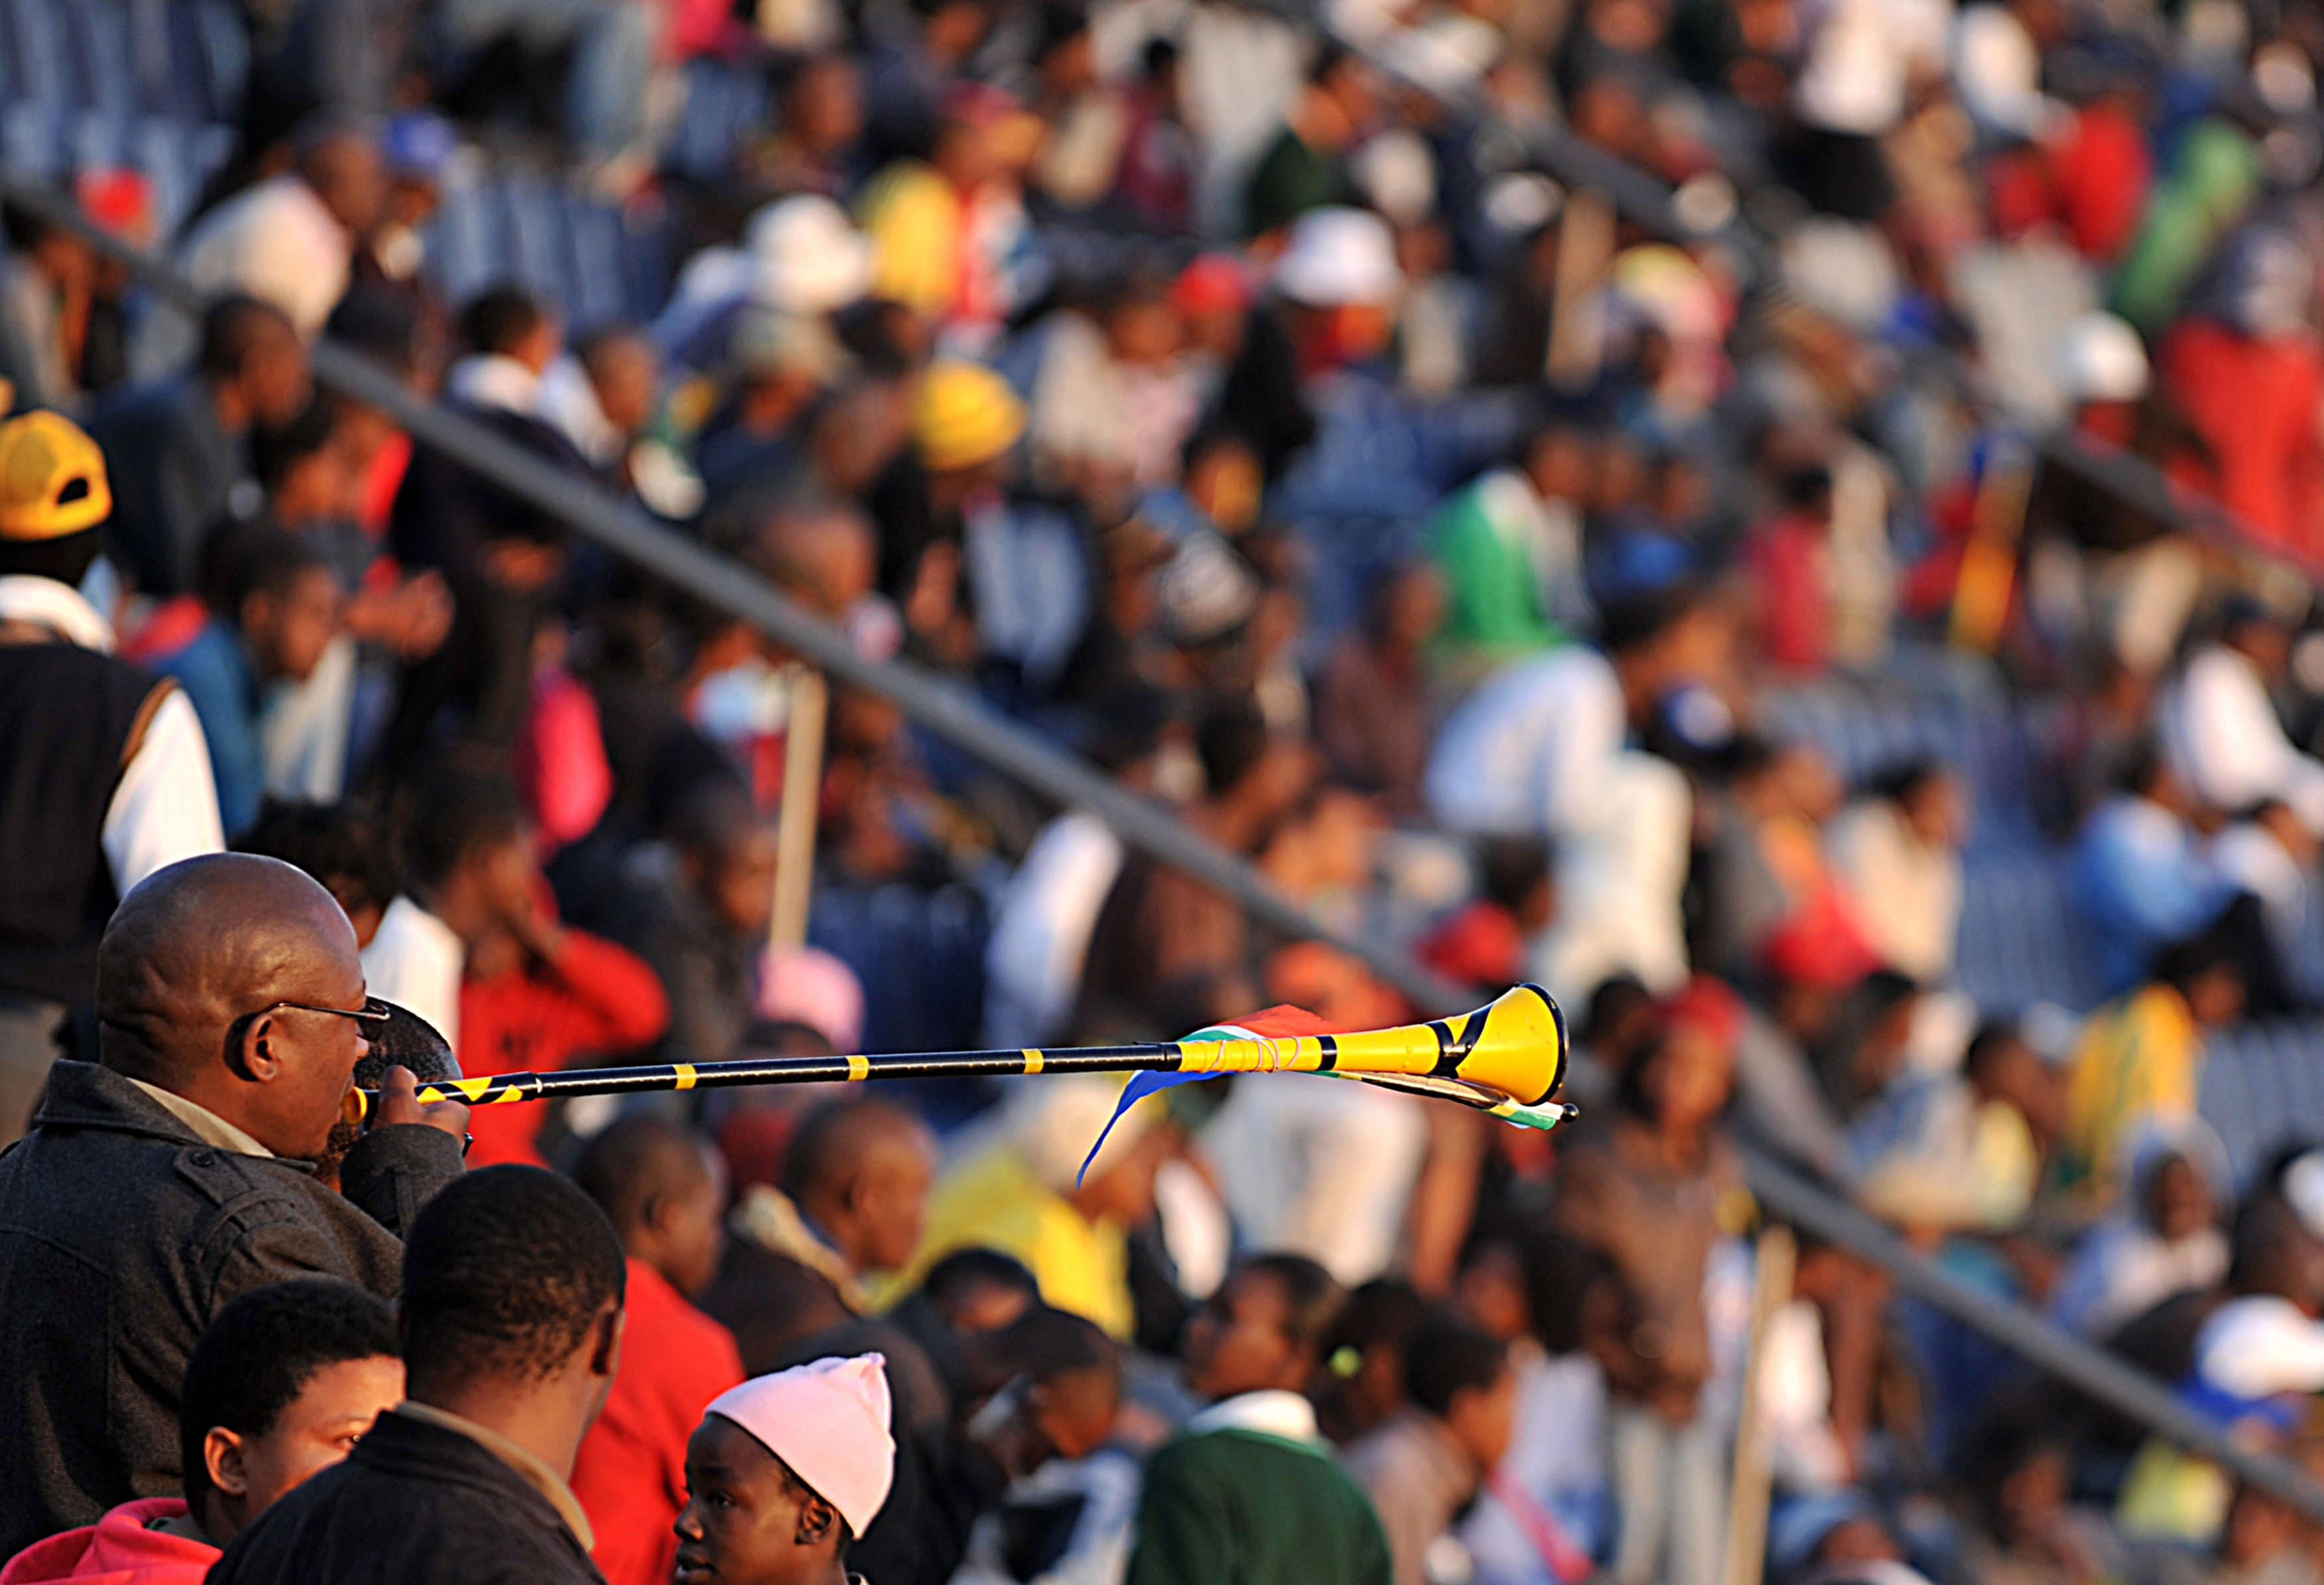 Technology changes the way athletes and coaches perform as well as the fan experience